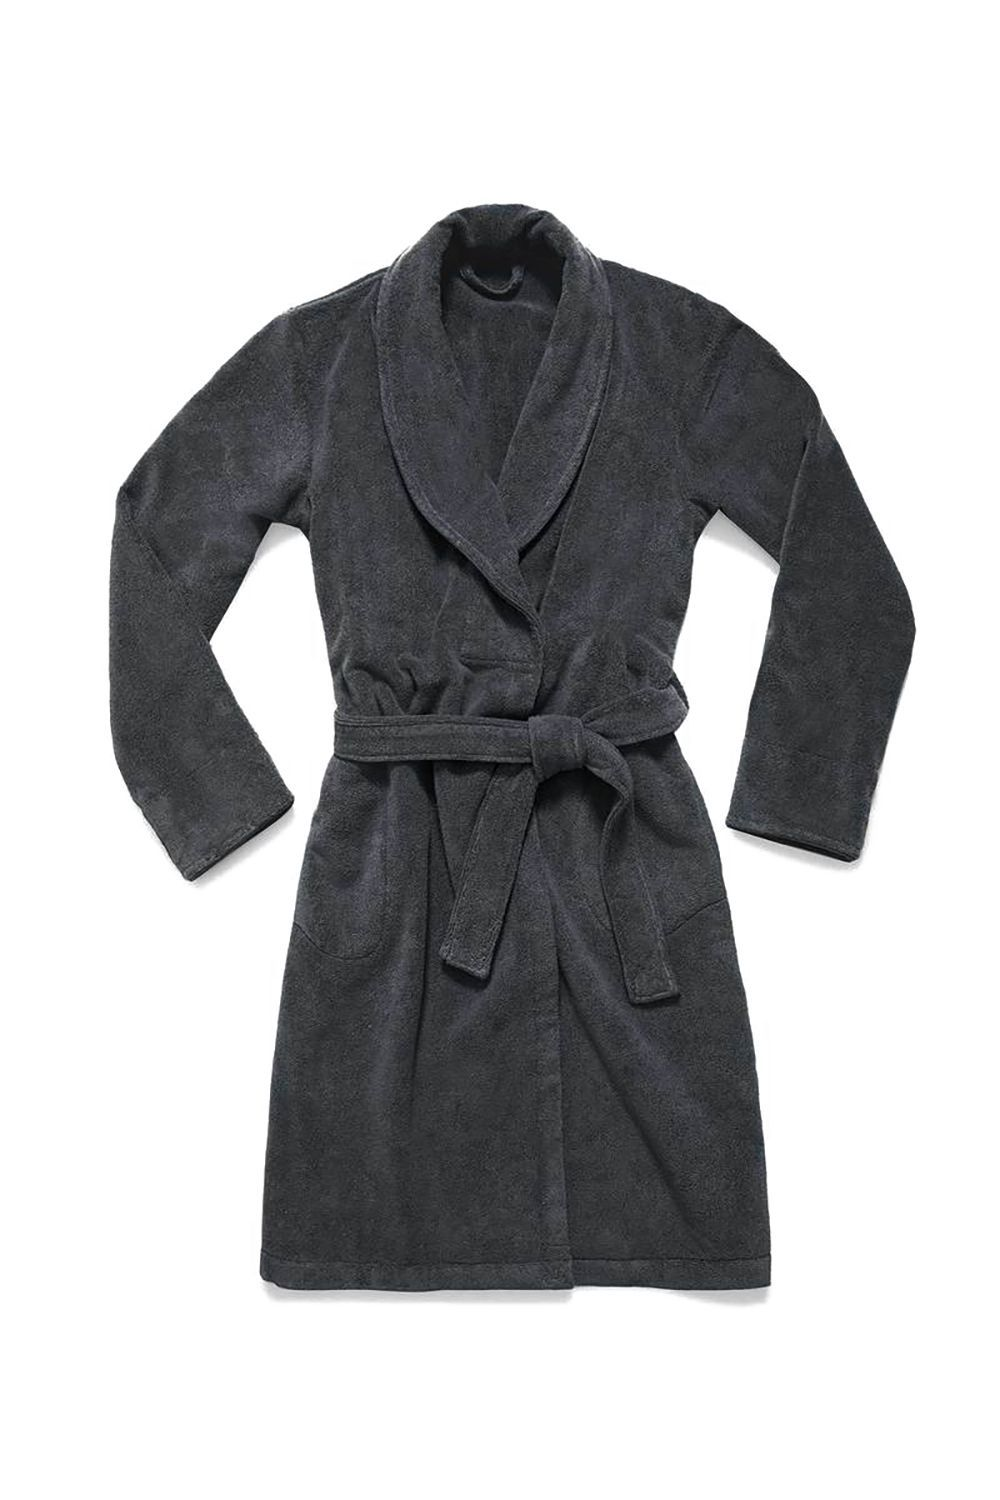 58cc4543f1 10 Best Bathrobes for Women 2019 - Dreamy Robes to Lounge Around In